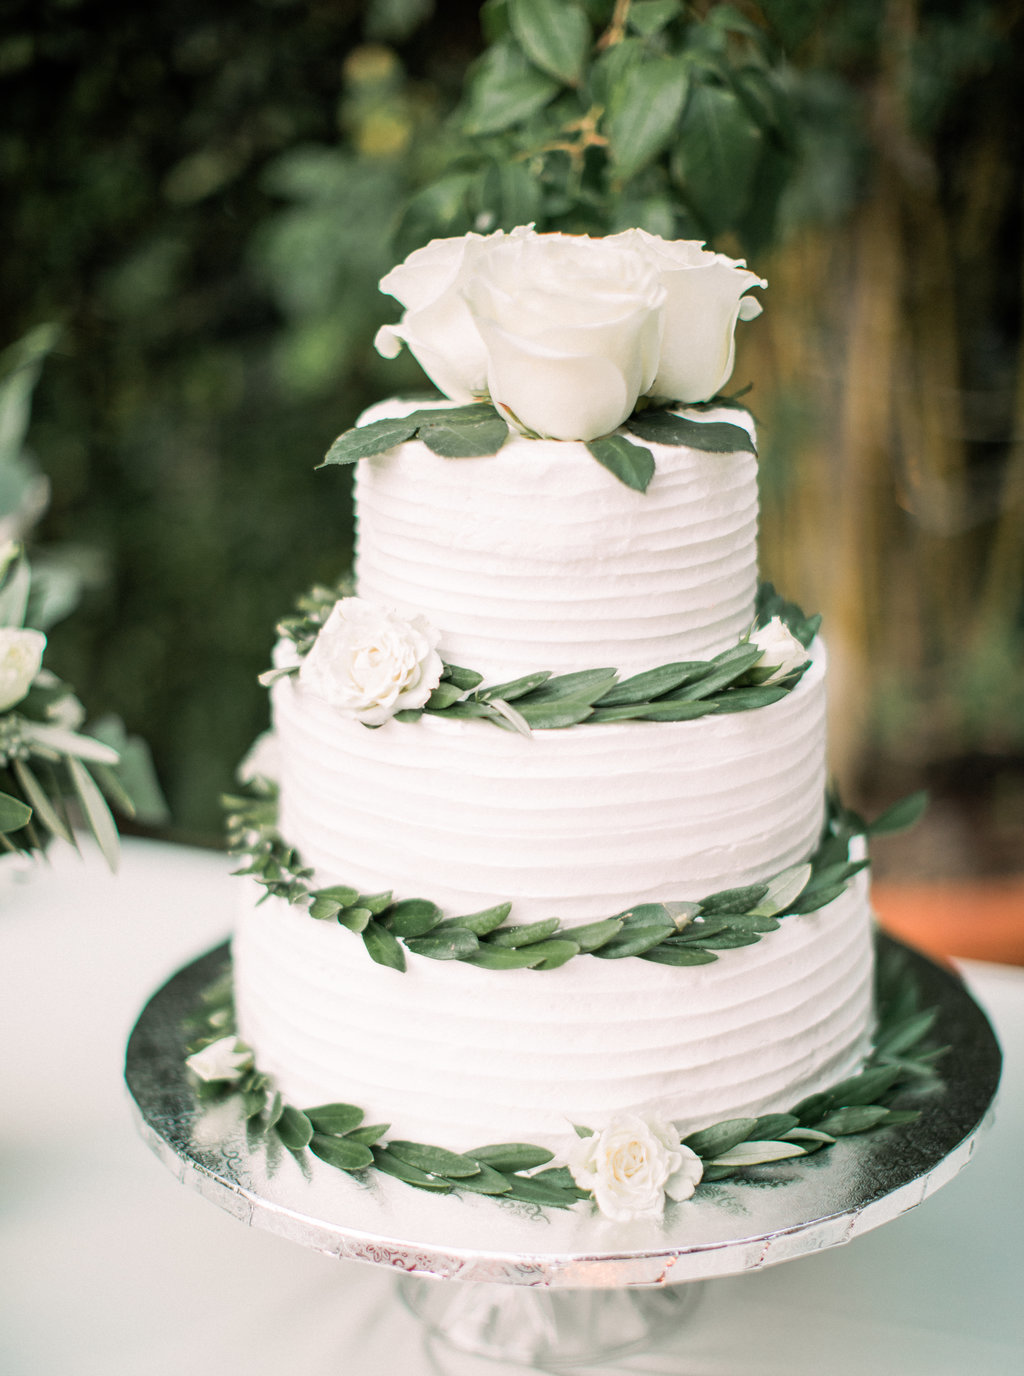 Three tiered wedding cake with eucalyptus leaves at wedding reception at Butterfly Lane Estate